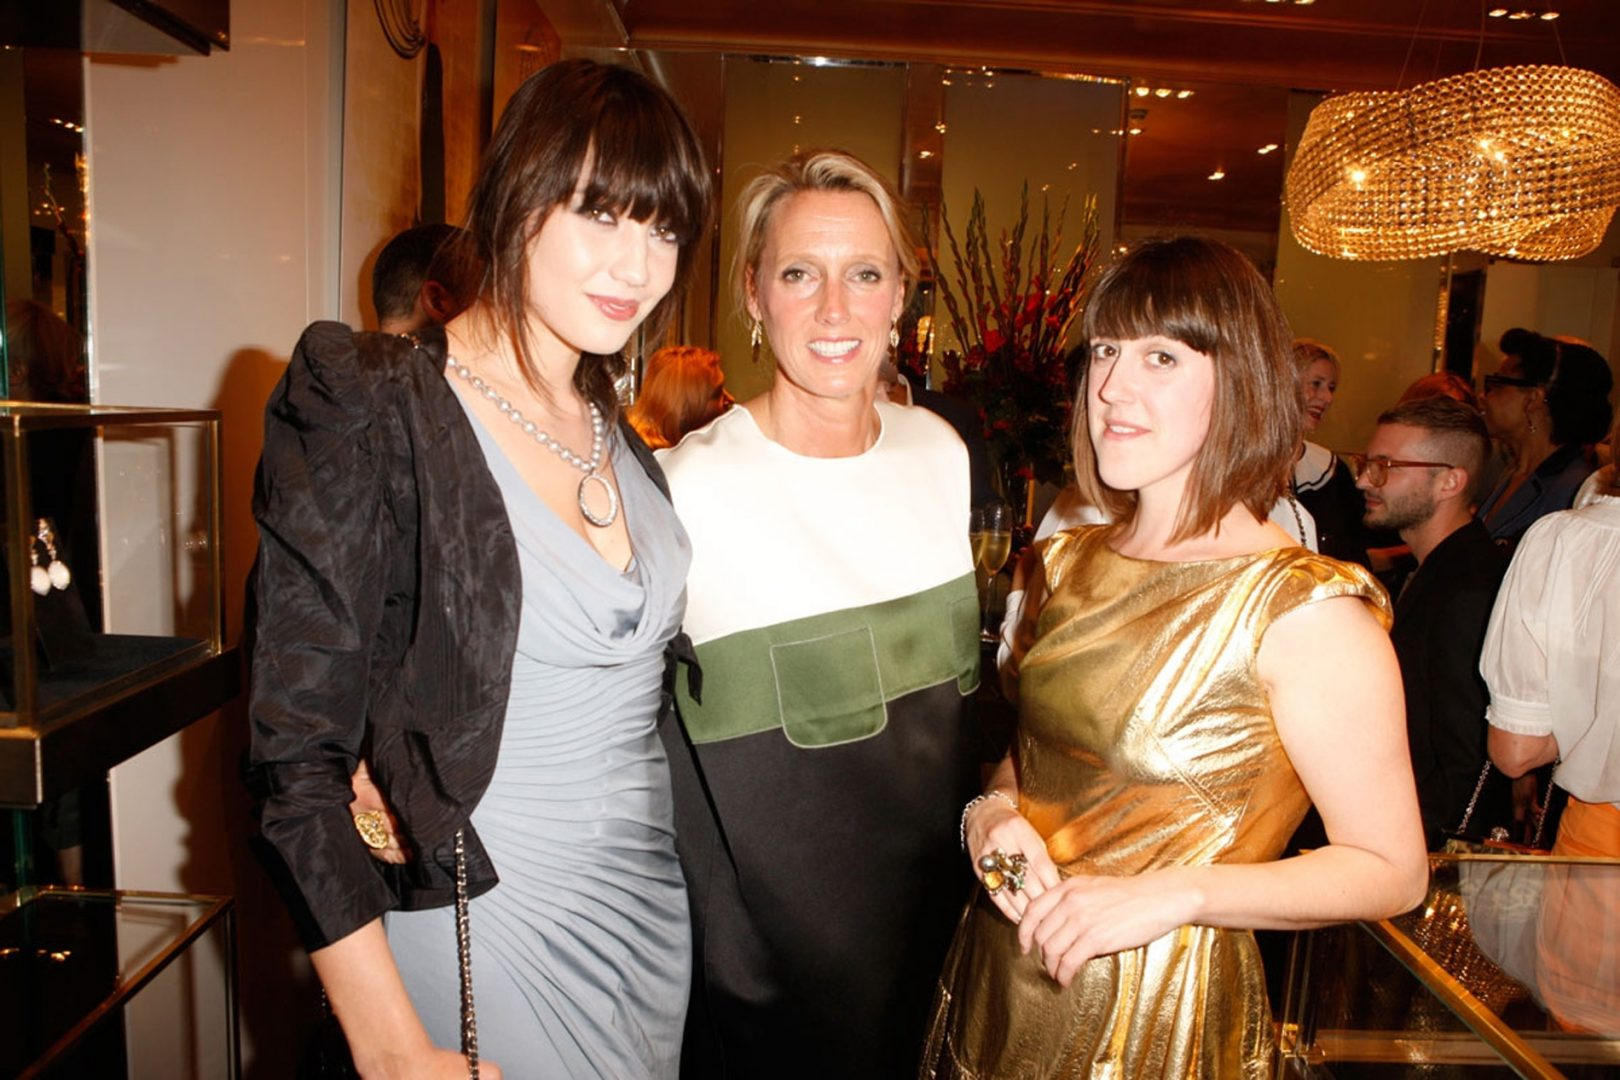 Art at Annoushka drinks and dinner 406 Daisy Lowe, ANnoushka Ducas and Rosie Emerson